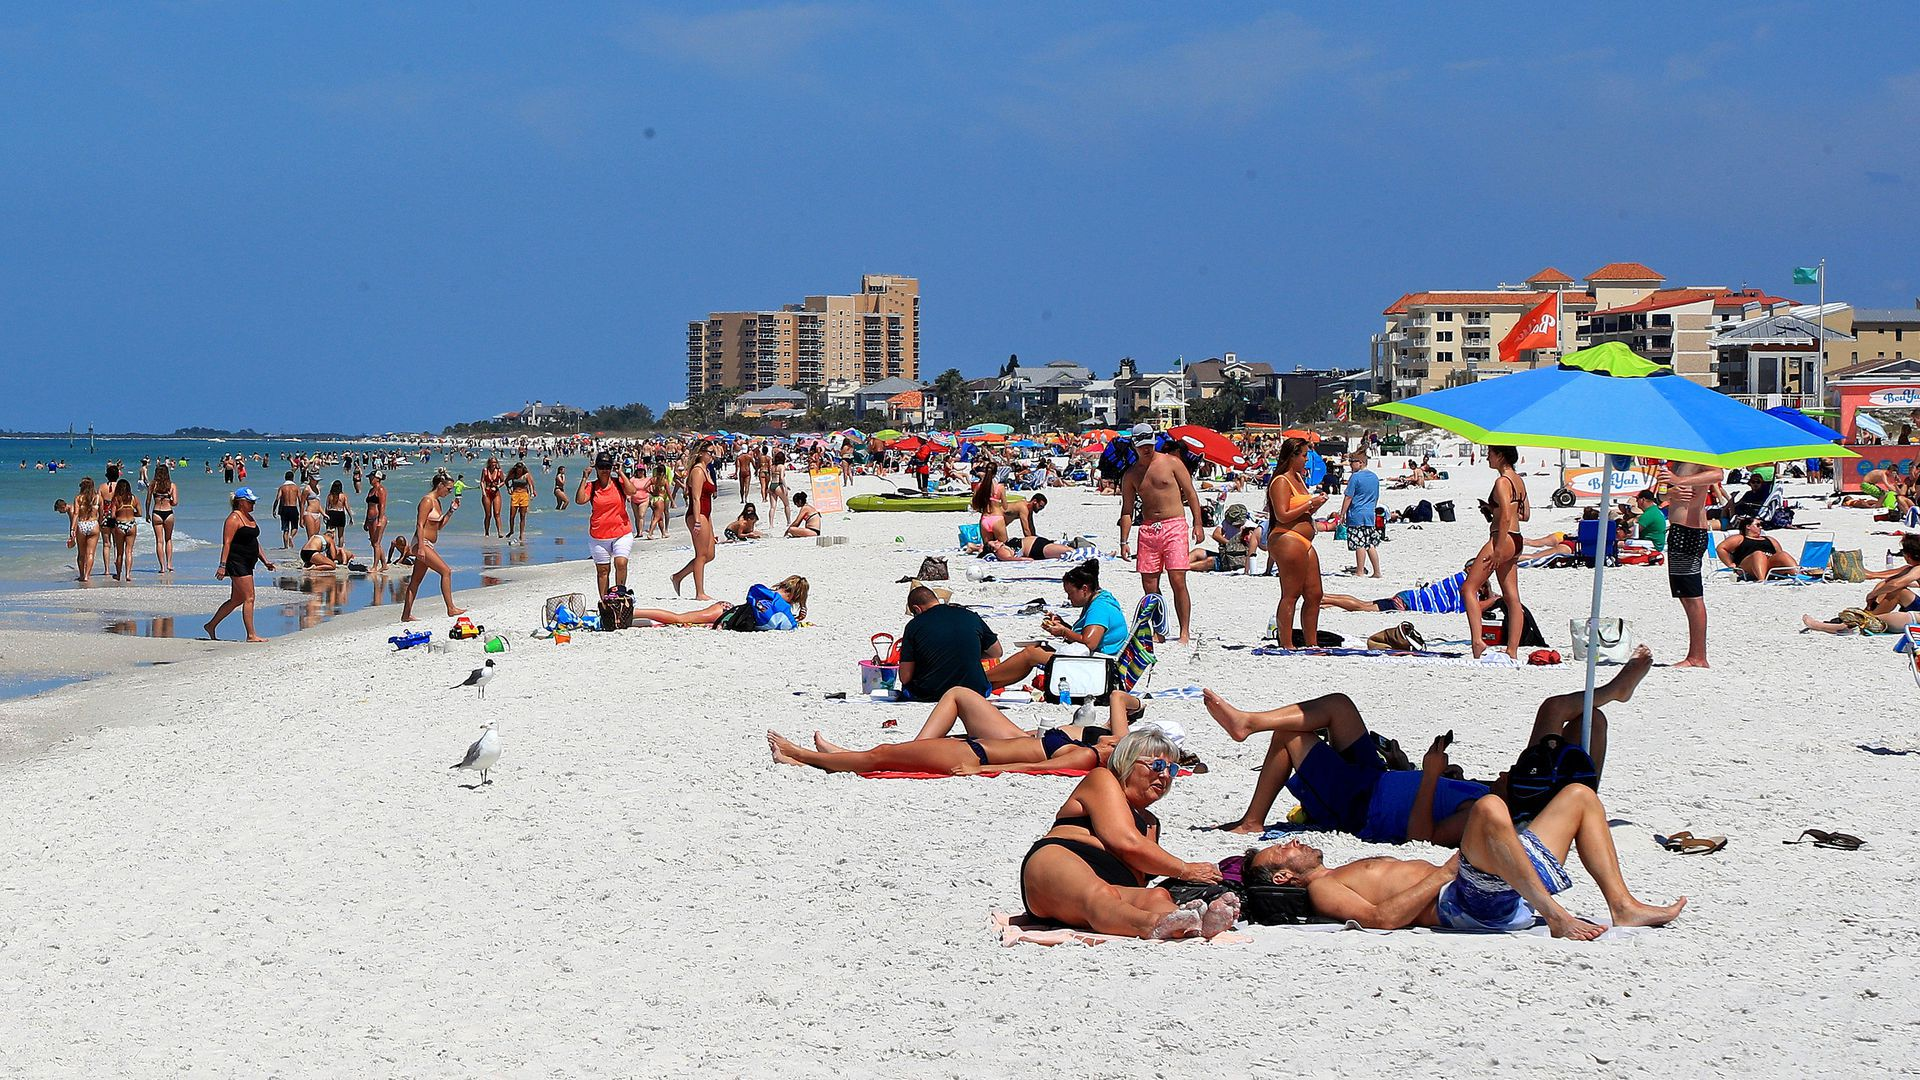 People gather on a beach for spring break in 2020.